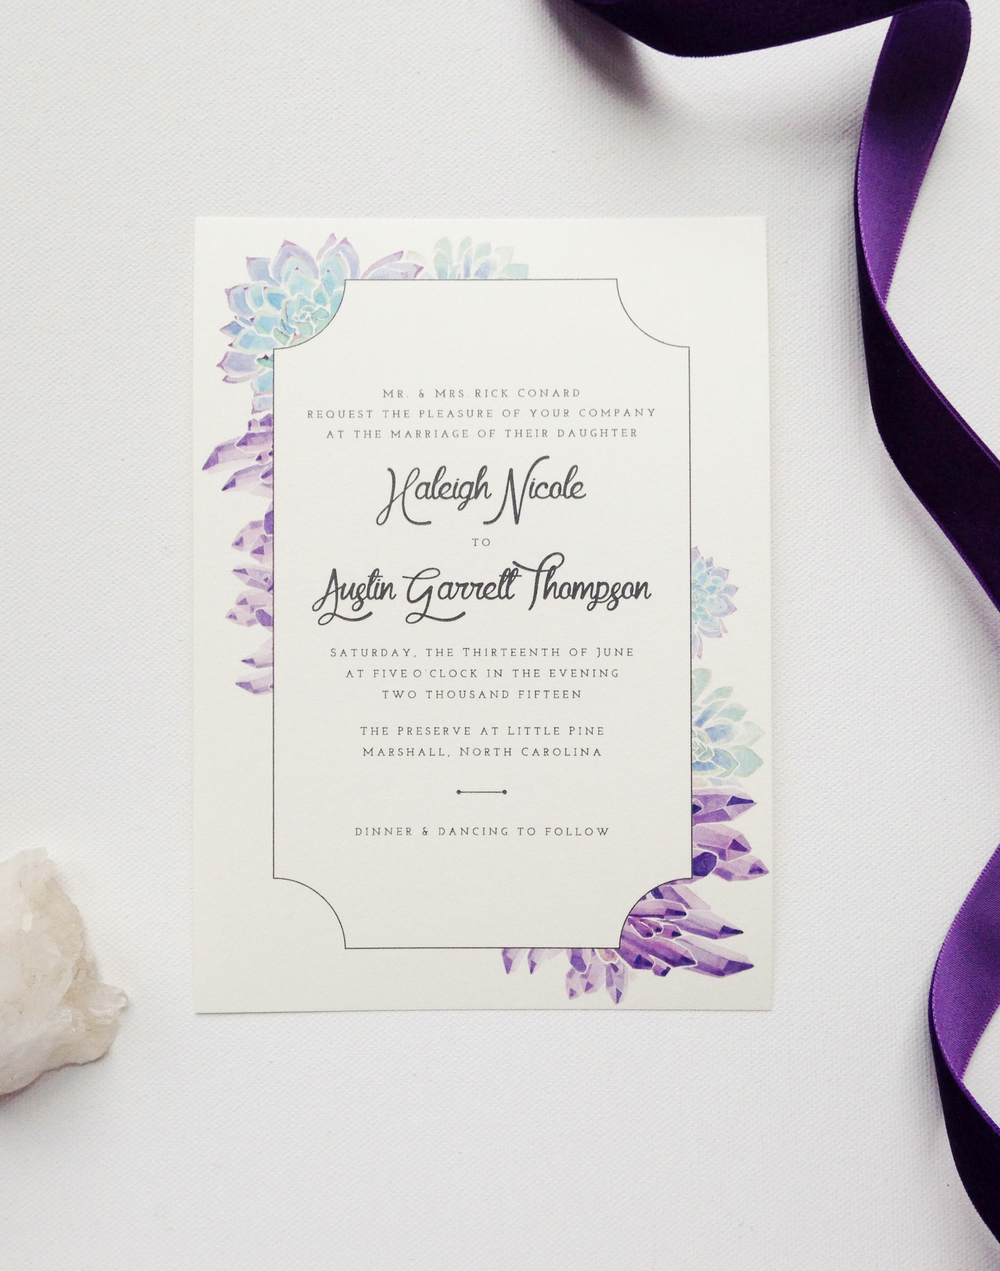 Watercolor amethyst and succulent wedding invitation by Sable and Gray Paper Co